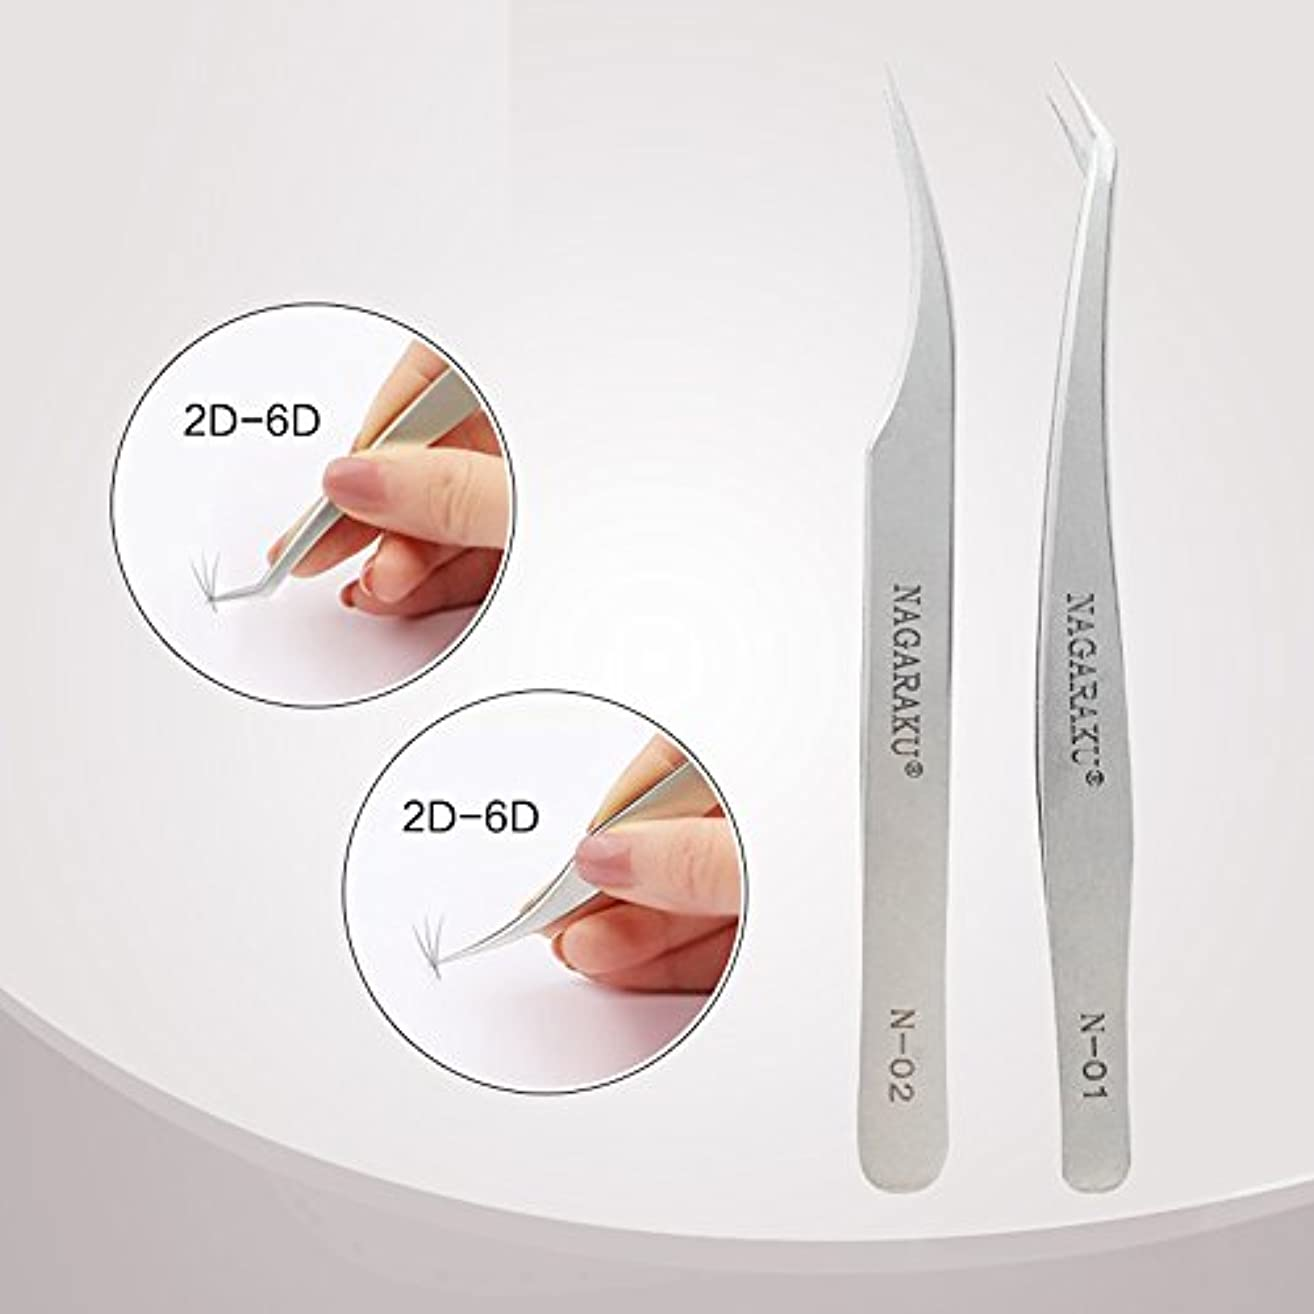 発揮する路面電車責任者NAGARAKU 2pcs tweezers pincet for professional eyelash extension volume flower bloom eyelash tweezers stainless...